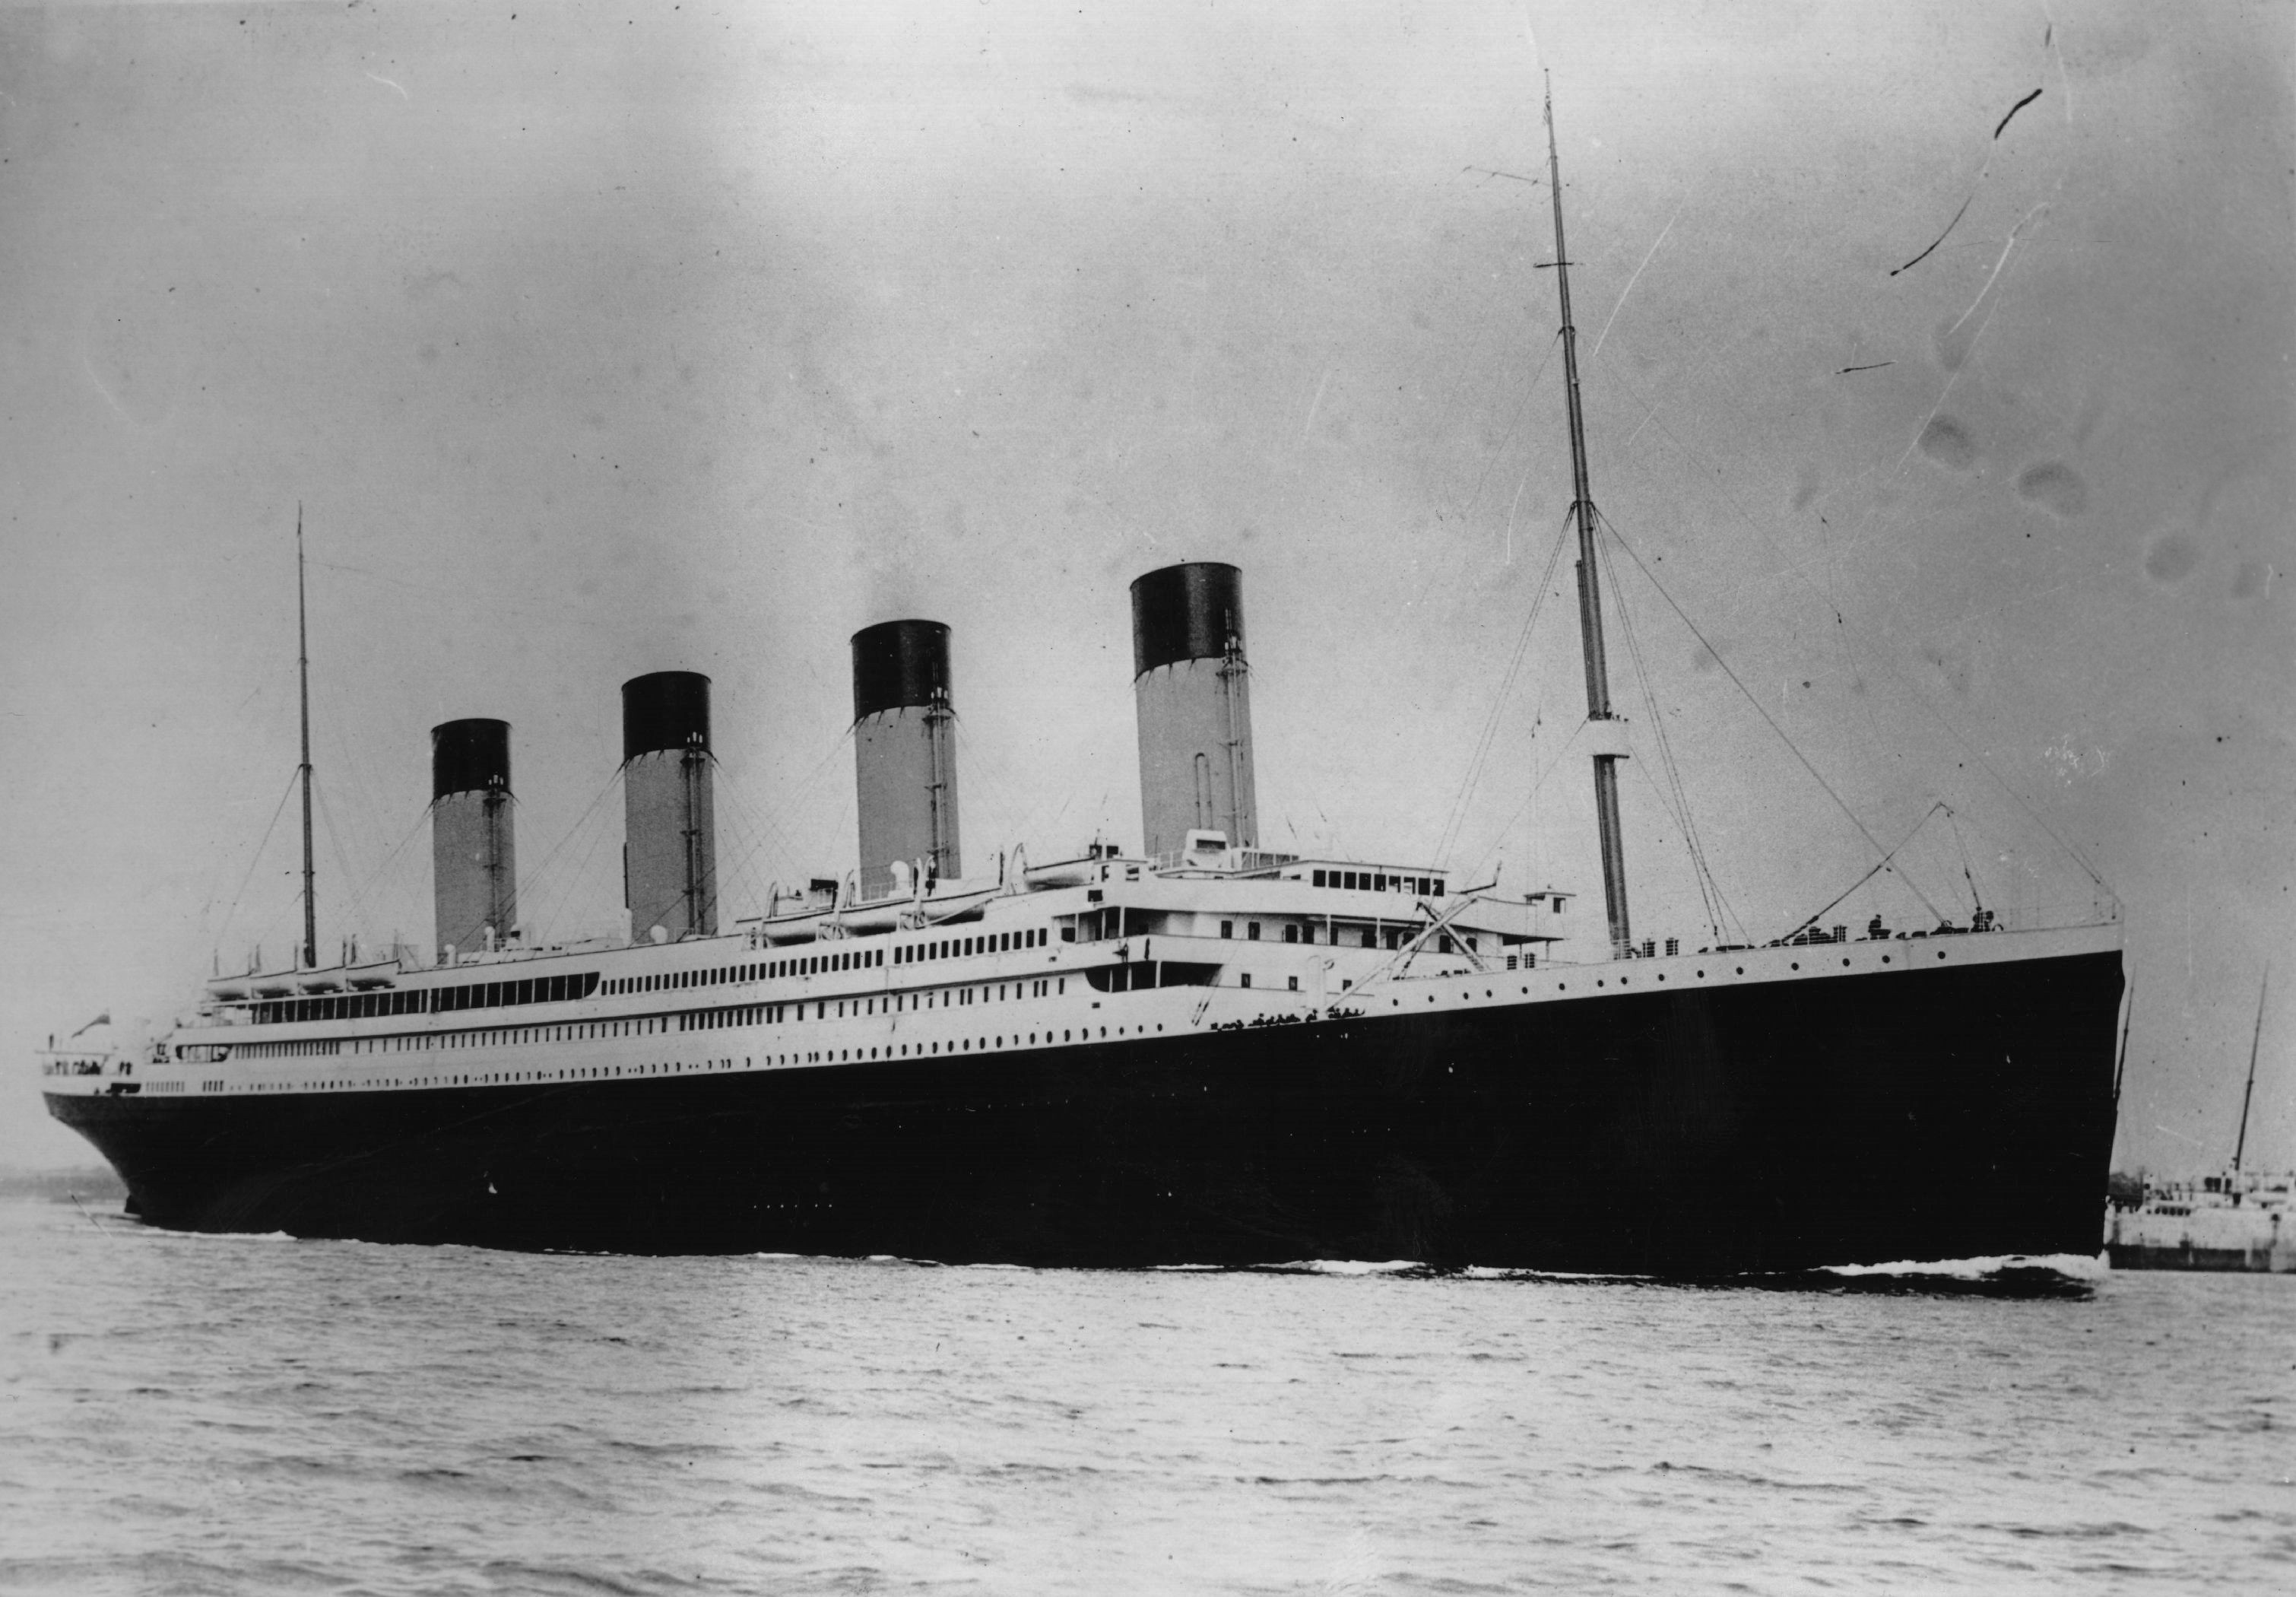 El monumental RMS Titanic. Photo by Central Press/Getty Images.